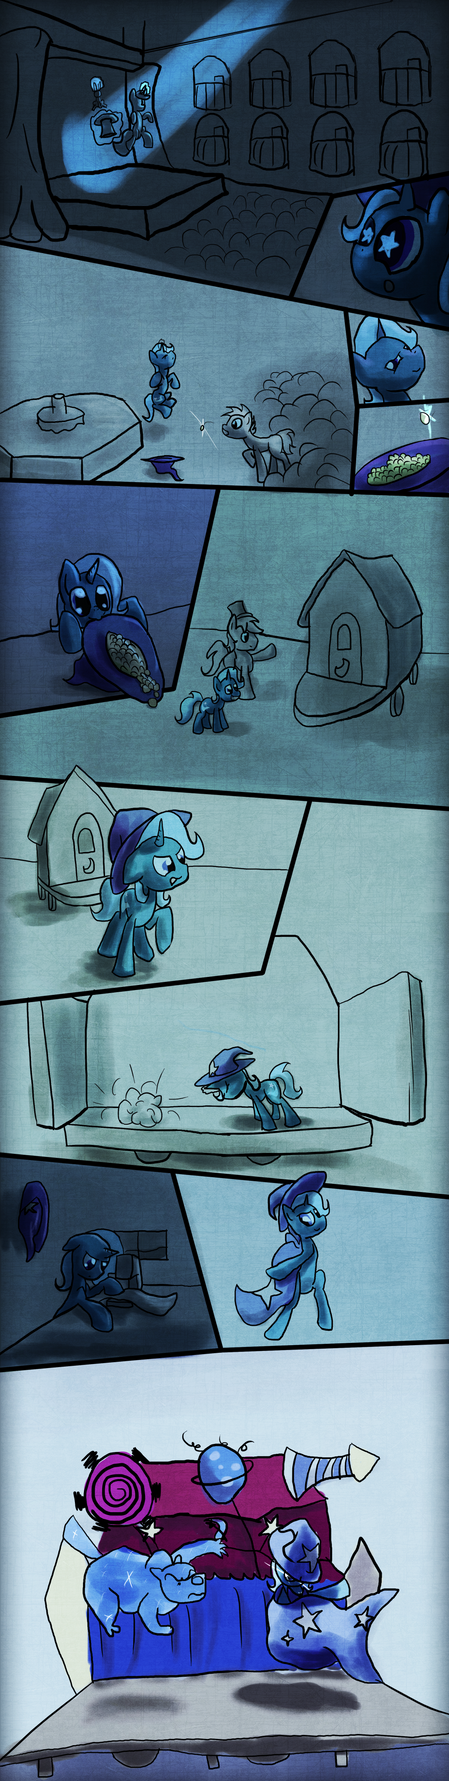 Growth (PG2) by DarkFlame75